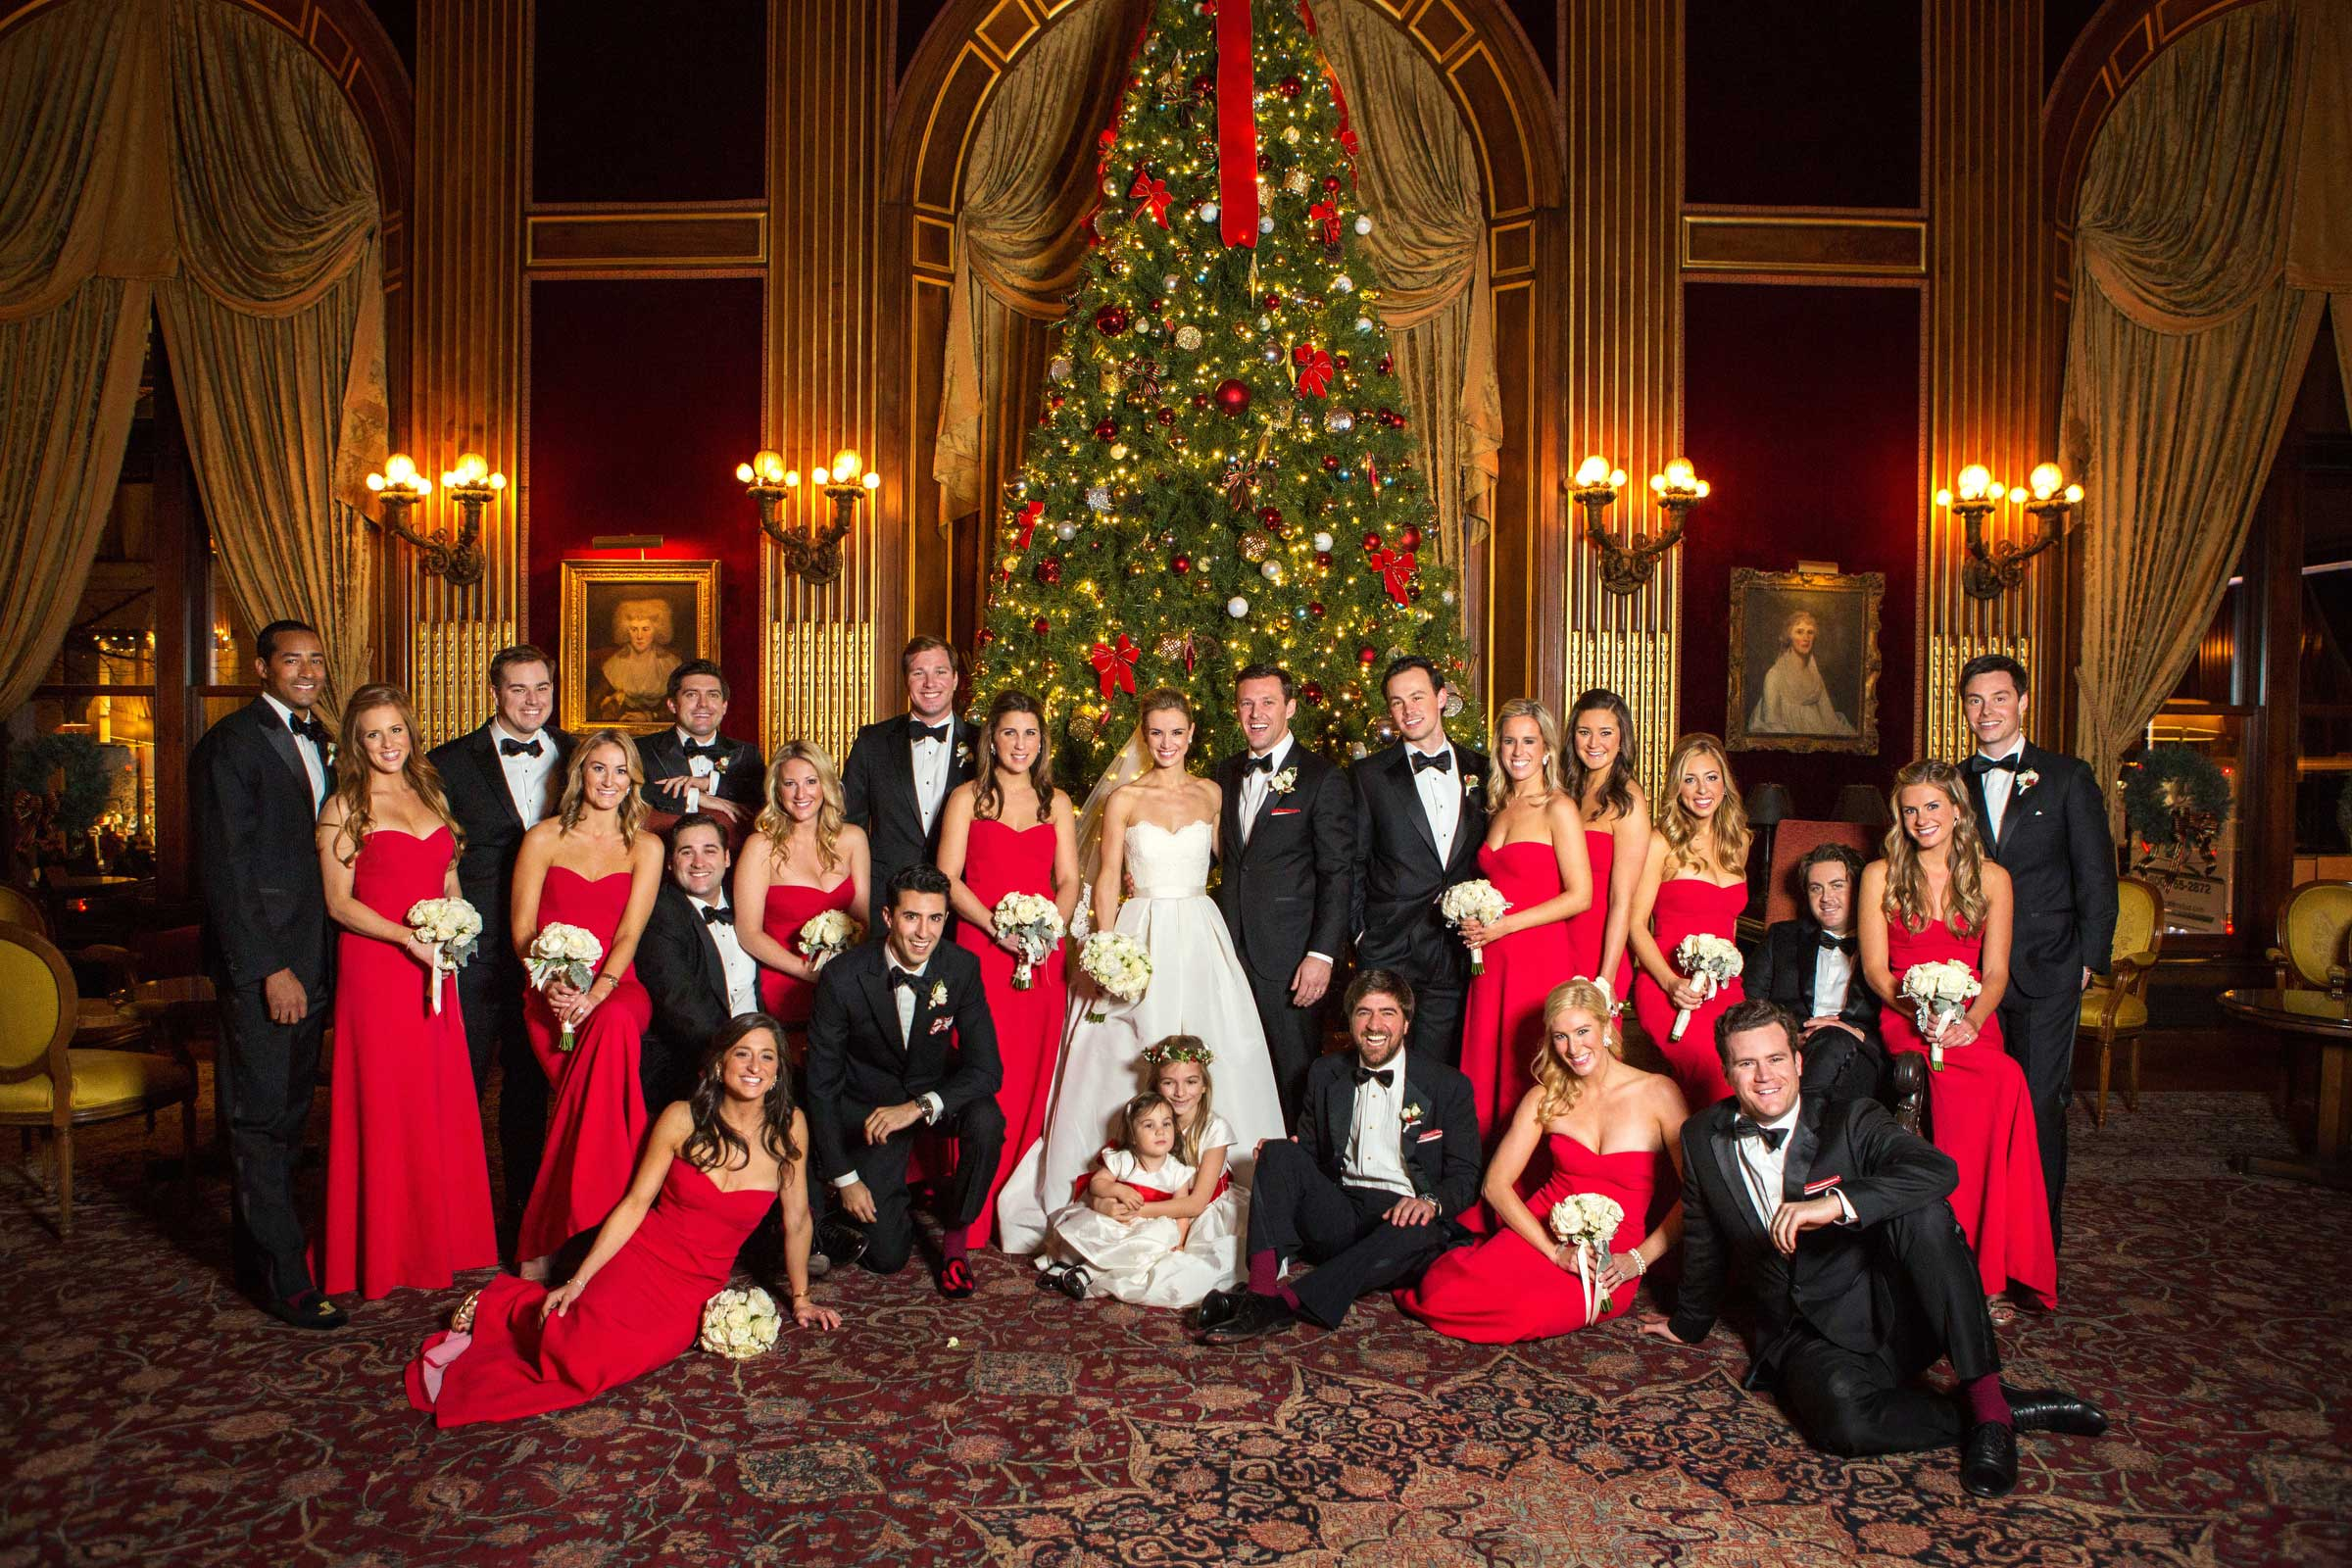 Festive dcor for weddings with a holiday or christmas theme christmas theme wedding party with red bridesmaid dresses ombrellifo Gallery